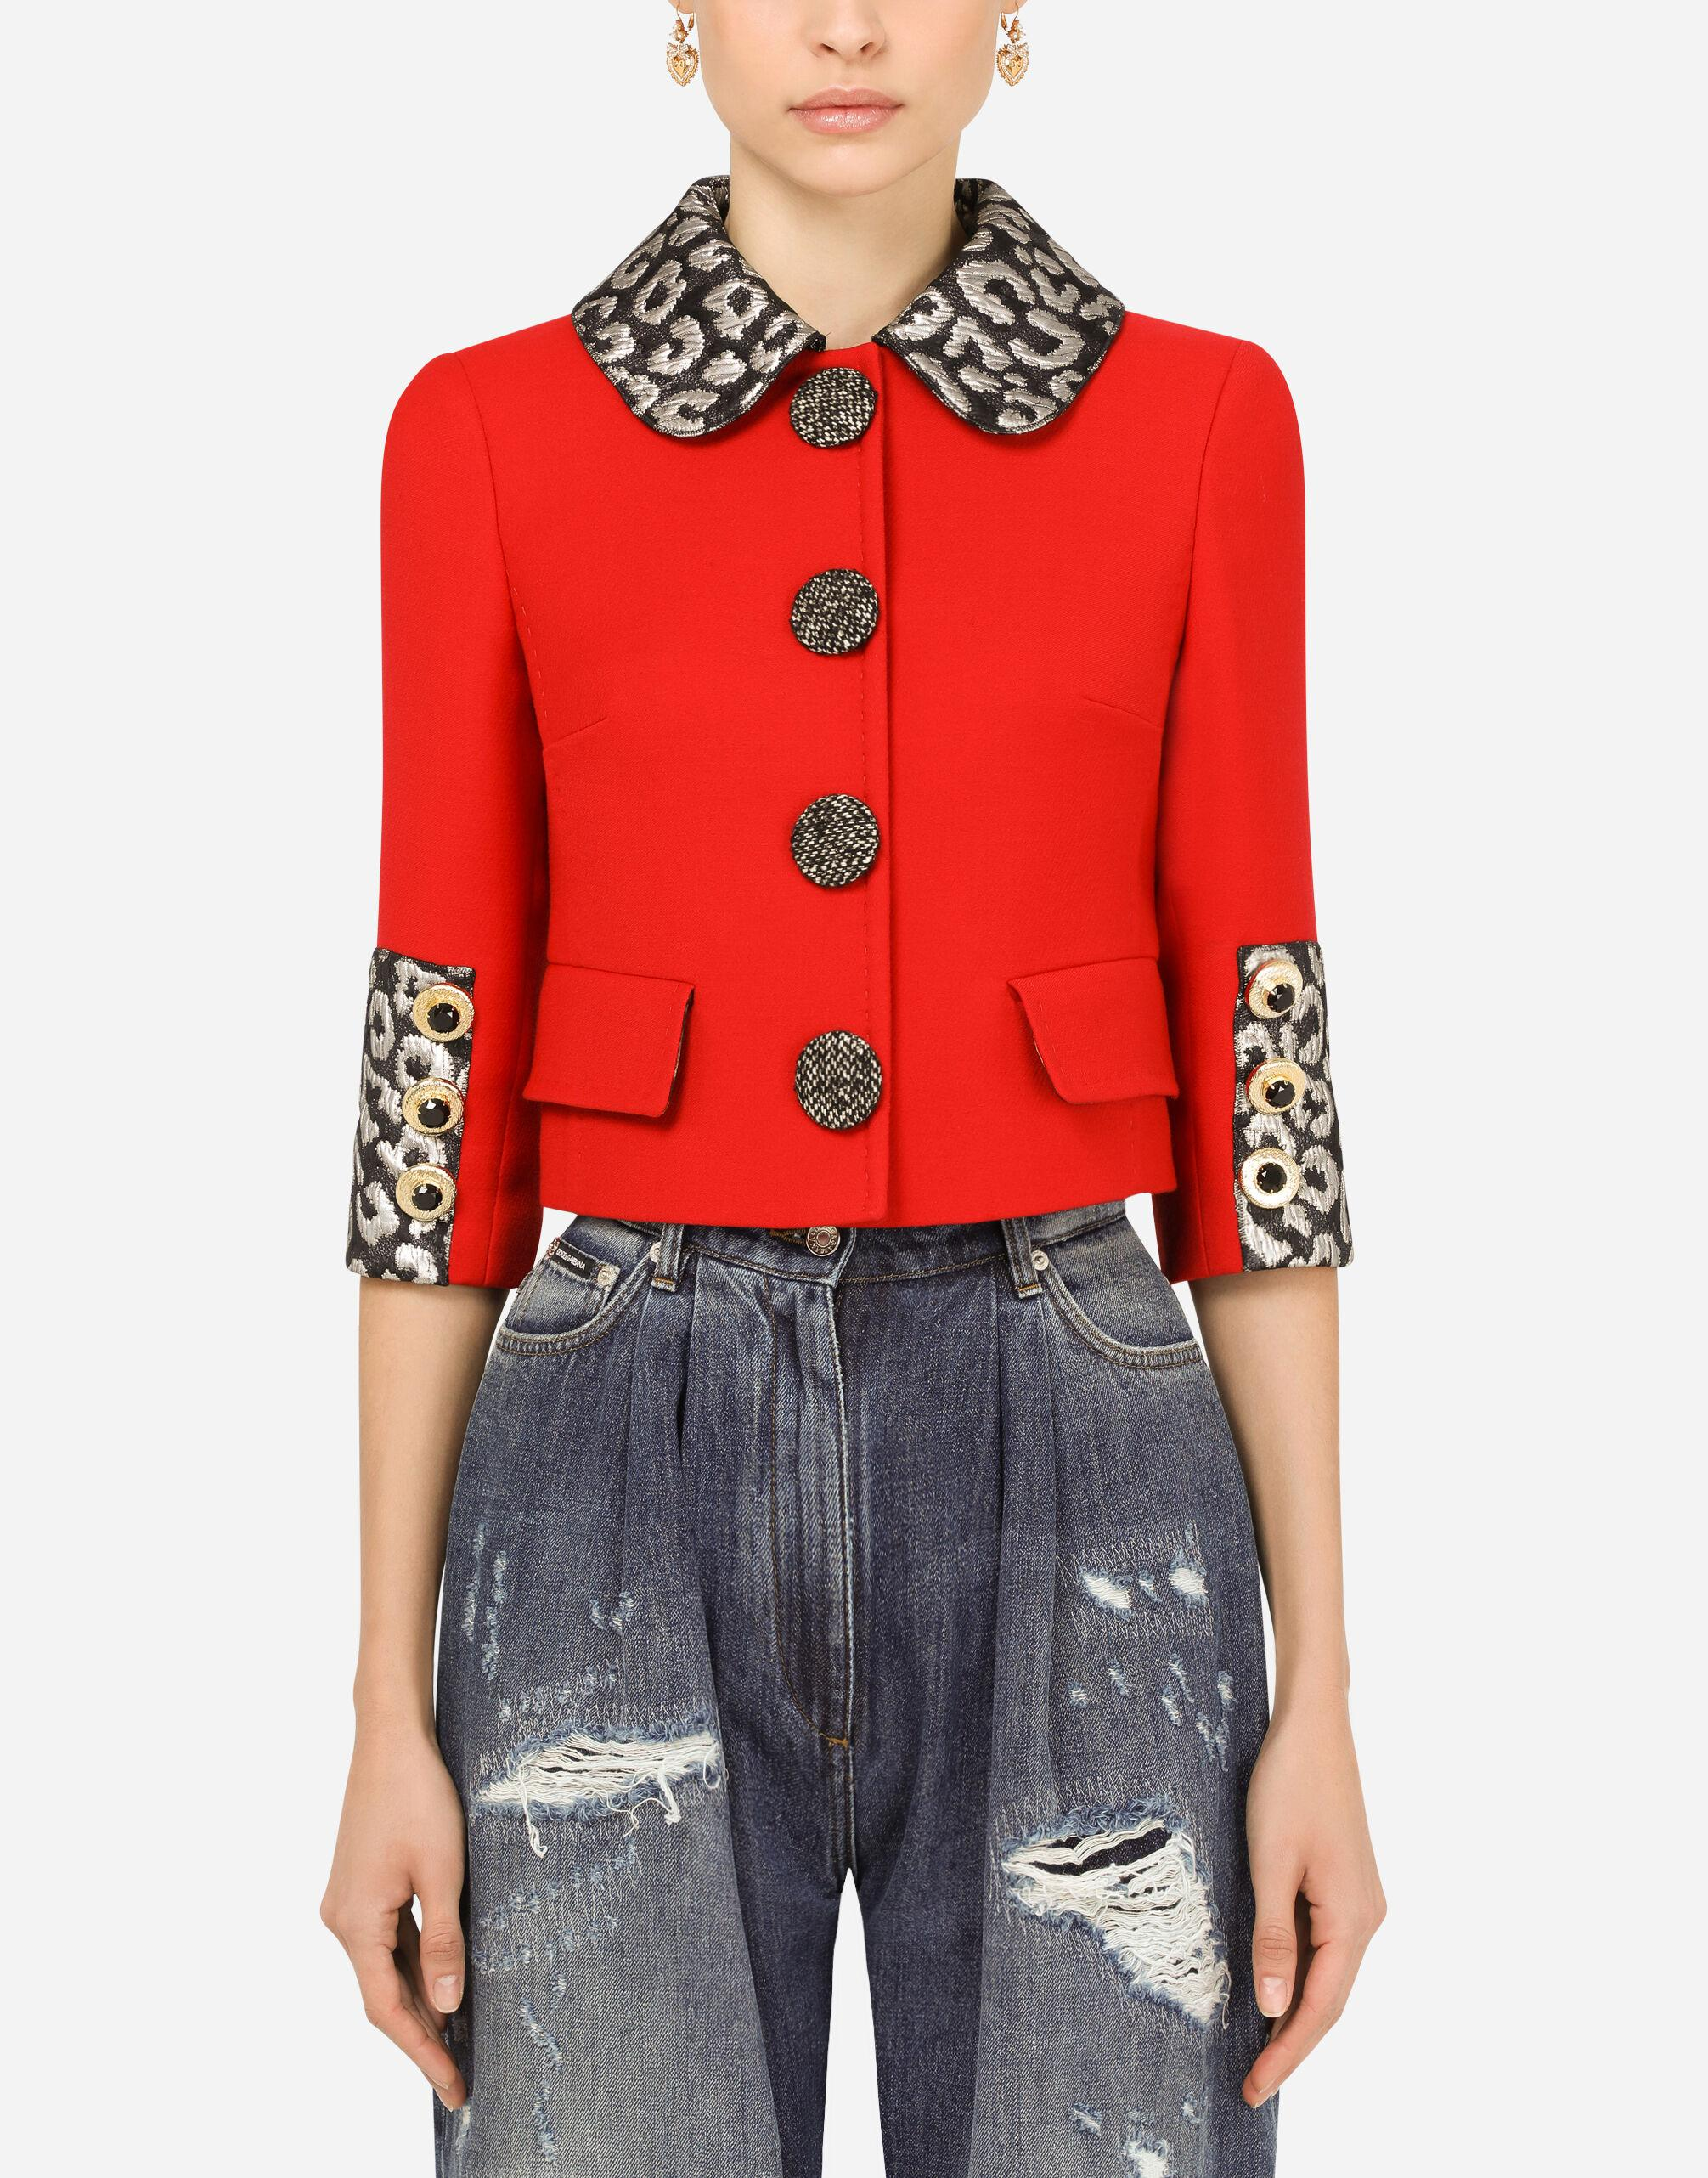 Wool crepe Gabbana jacket with jacquard details